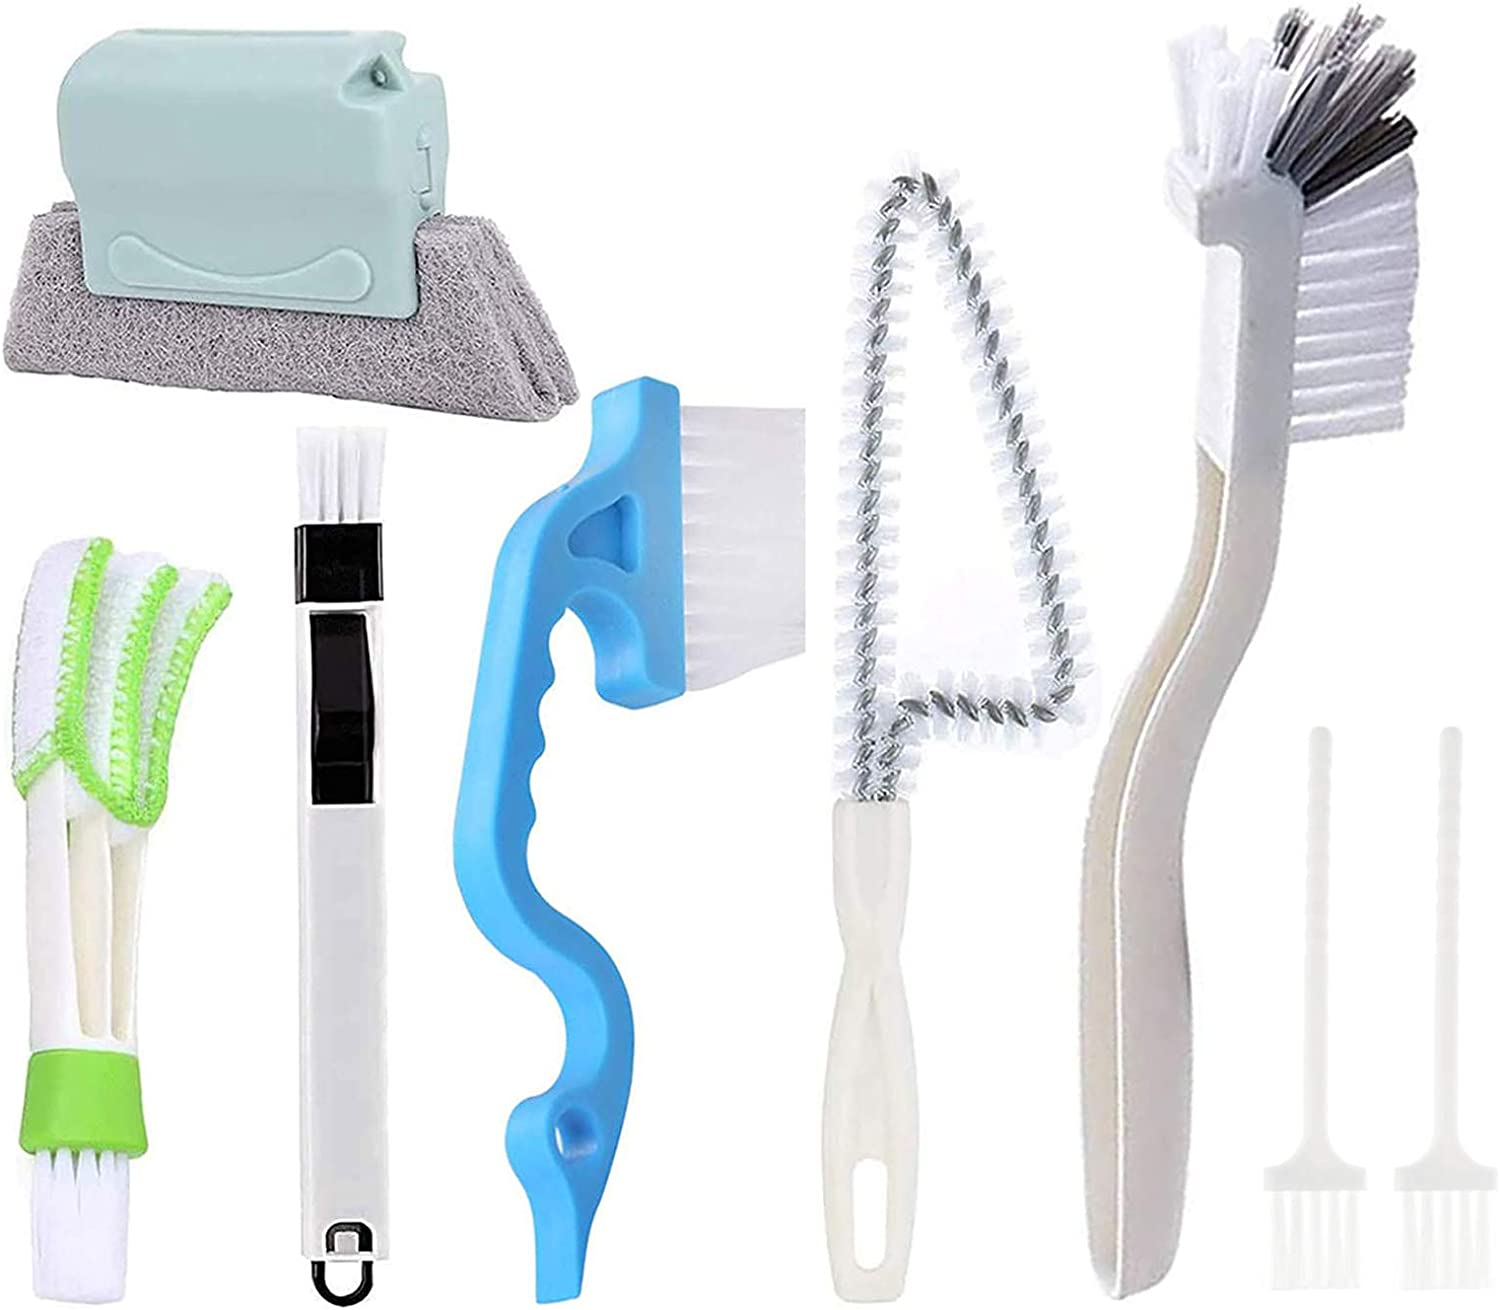 Check out 40 Genius Home Cleaning Tools You Can Find From Amazon at https://diyprojects.com/cleaning-tools/